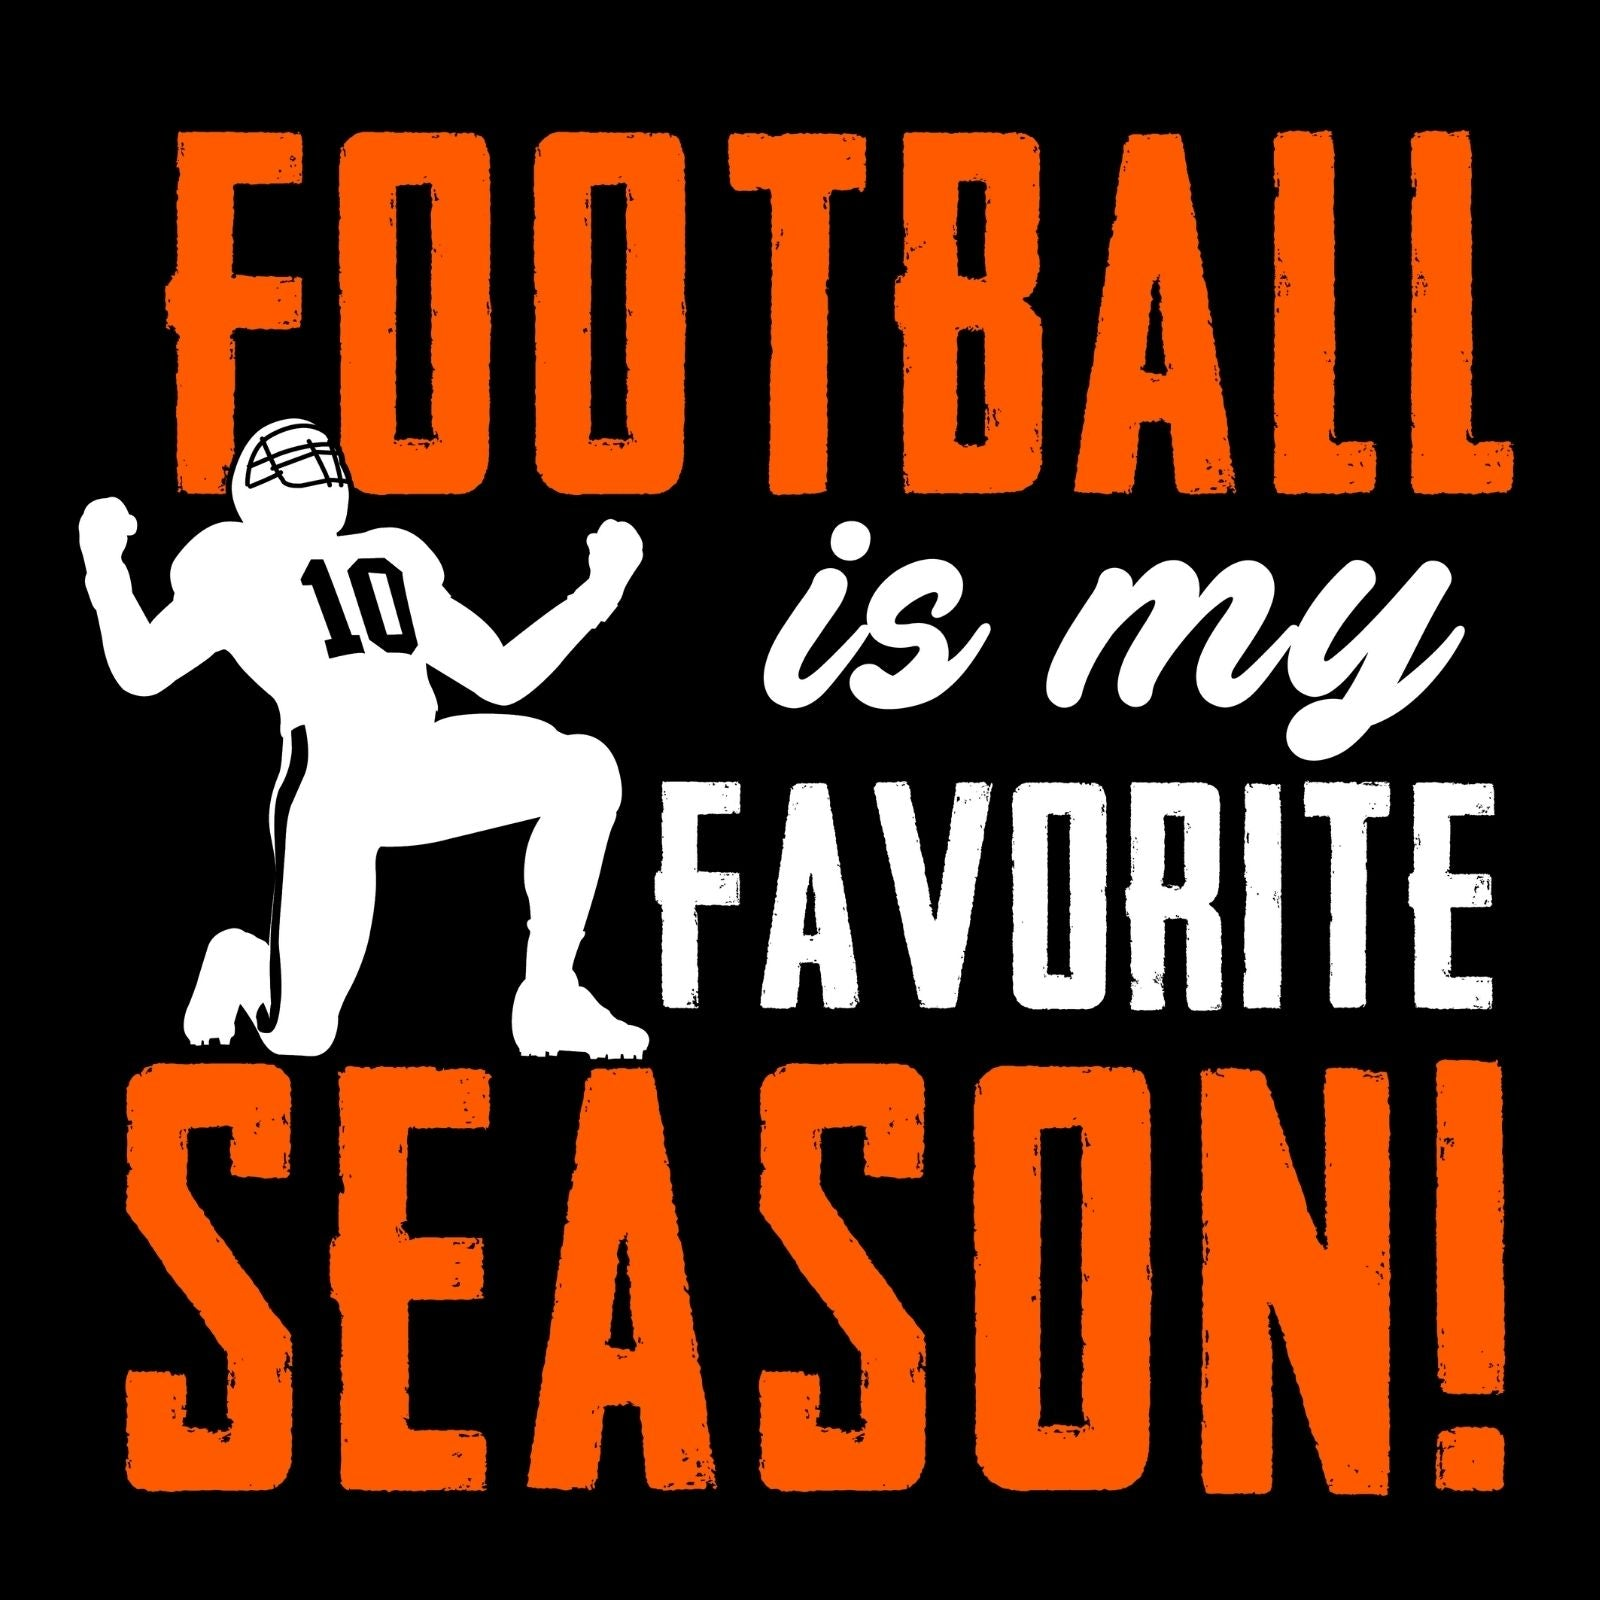 Football Is My Favorite Season - Bastard Graphics